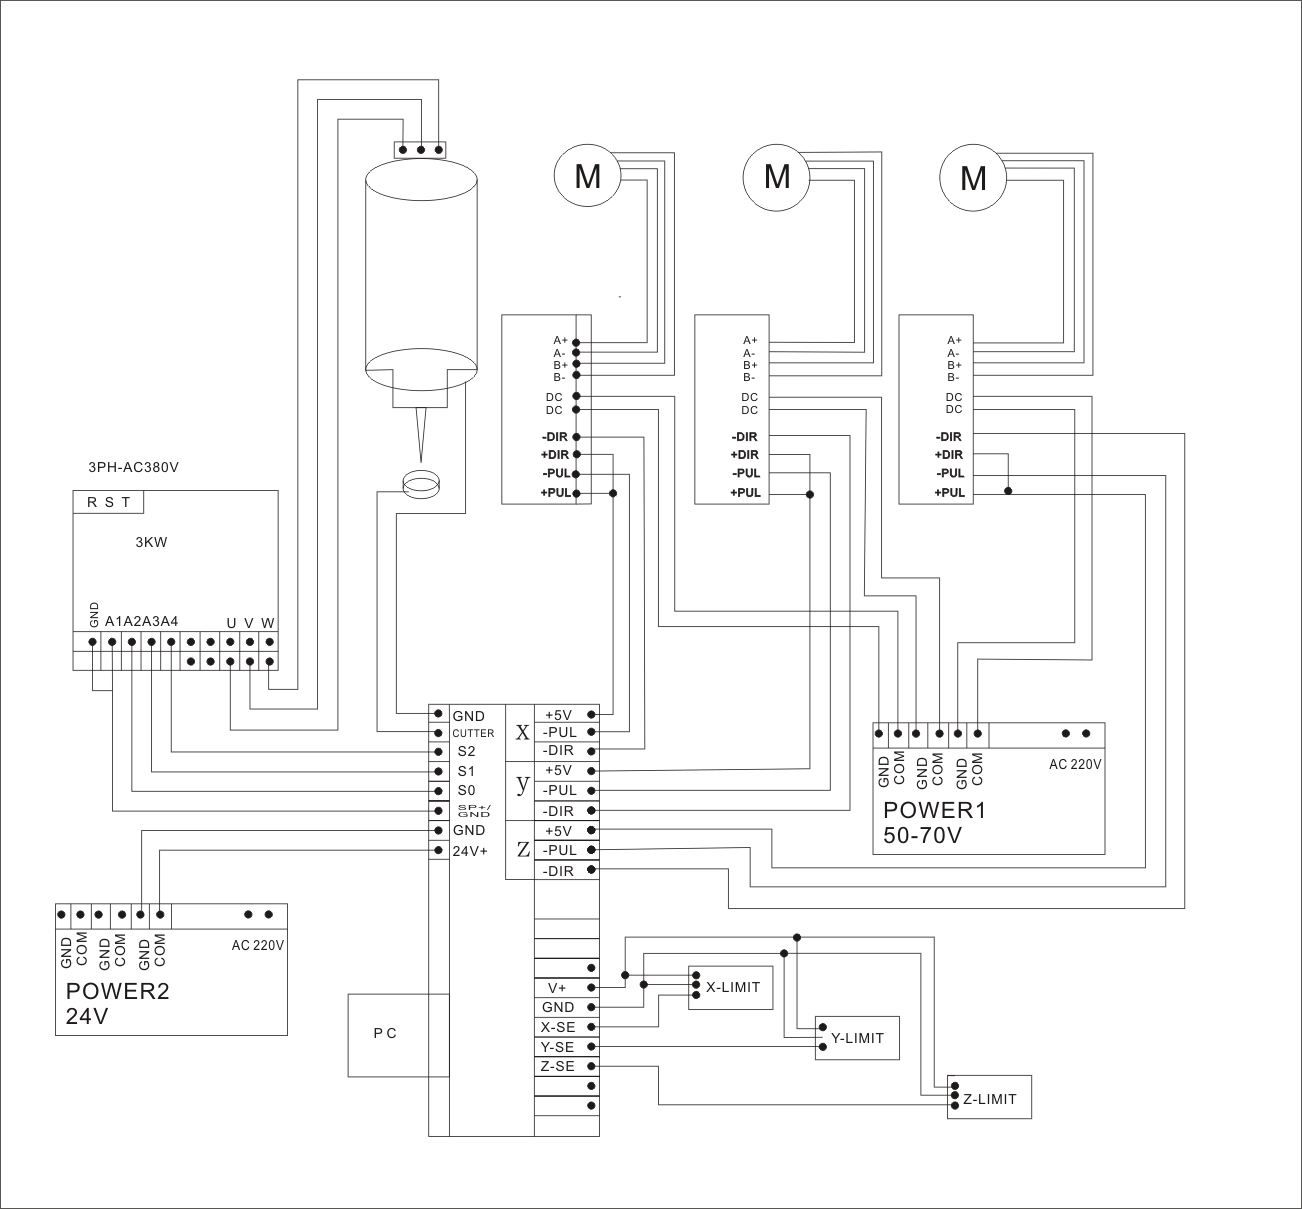 cnc router wiring diagram magneto for woodworking in 2019 pinterest